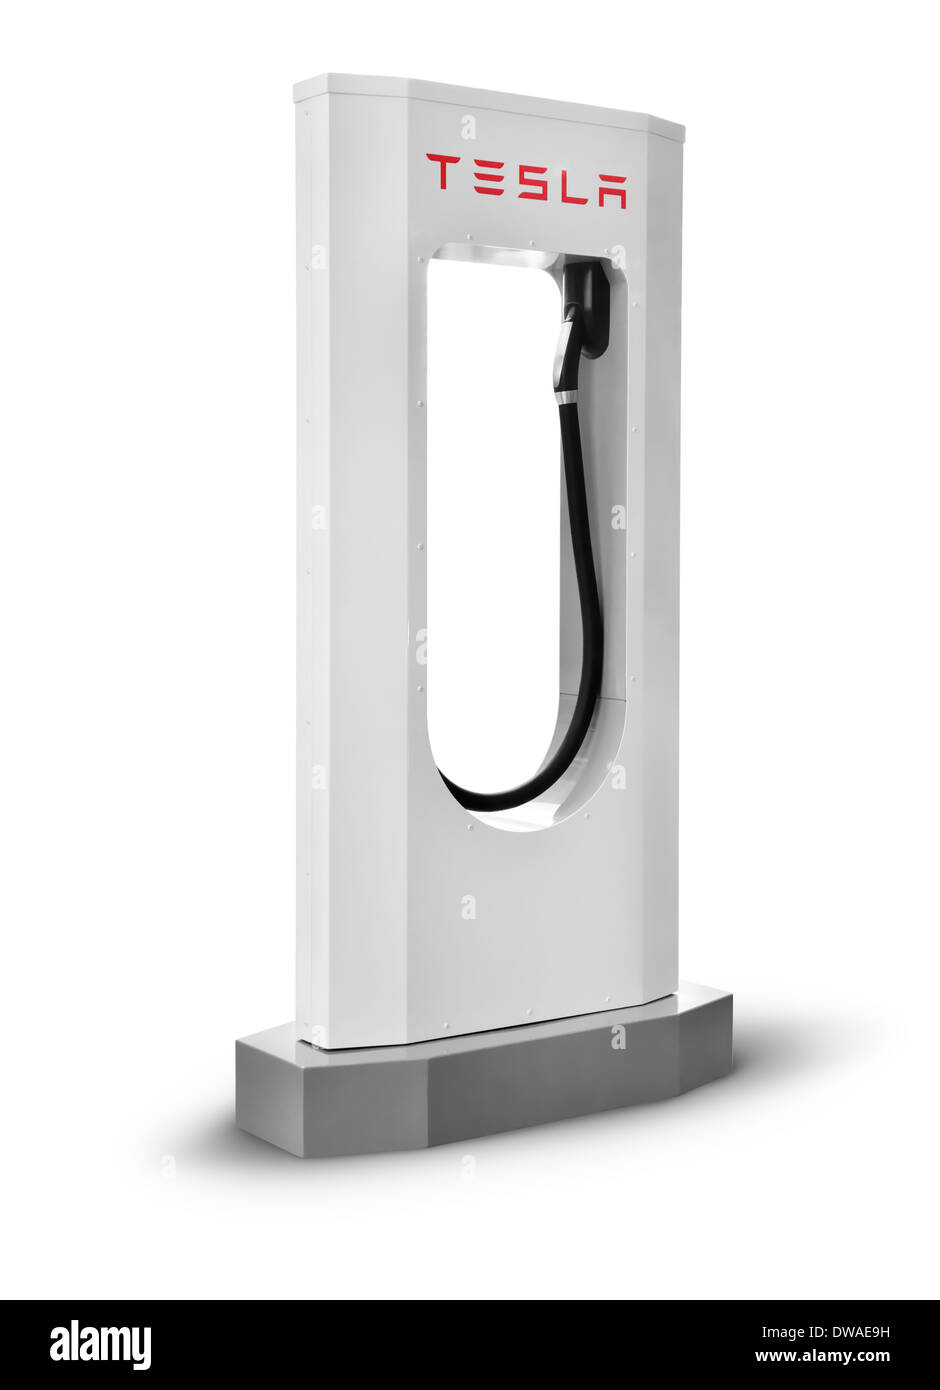 tesla supercharger charging station isolated on white background with stock photo royalty free. Black Bedroom Furniture Sets. Home Design Ideas